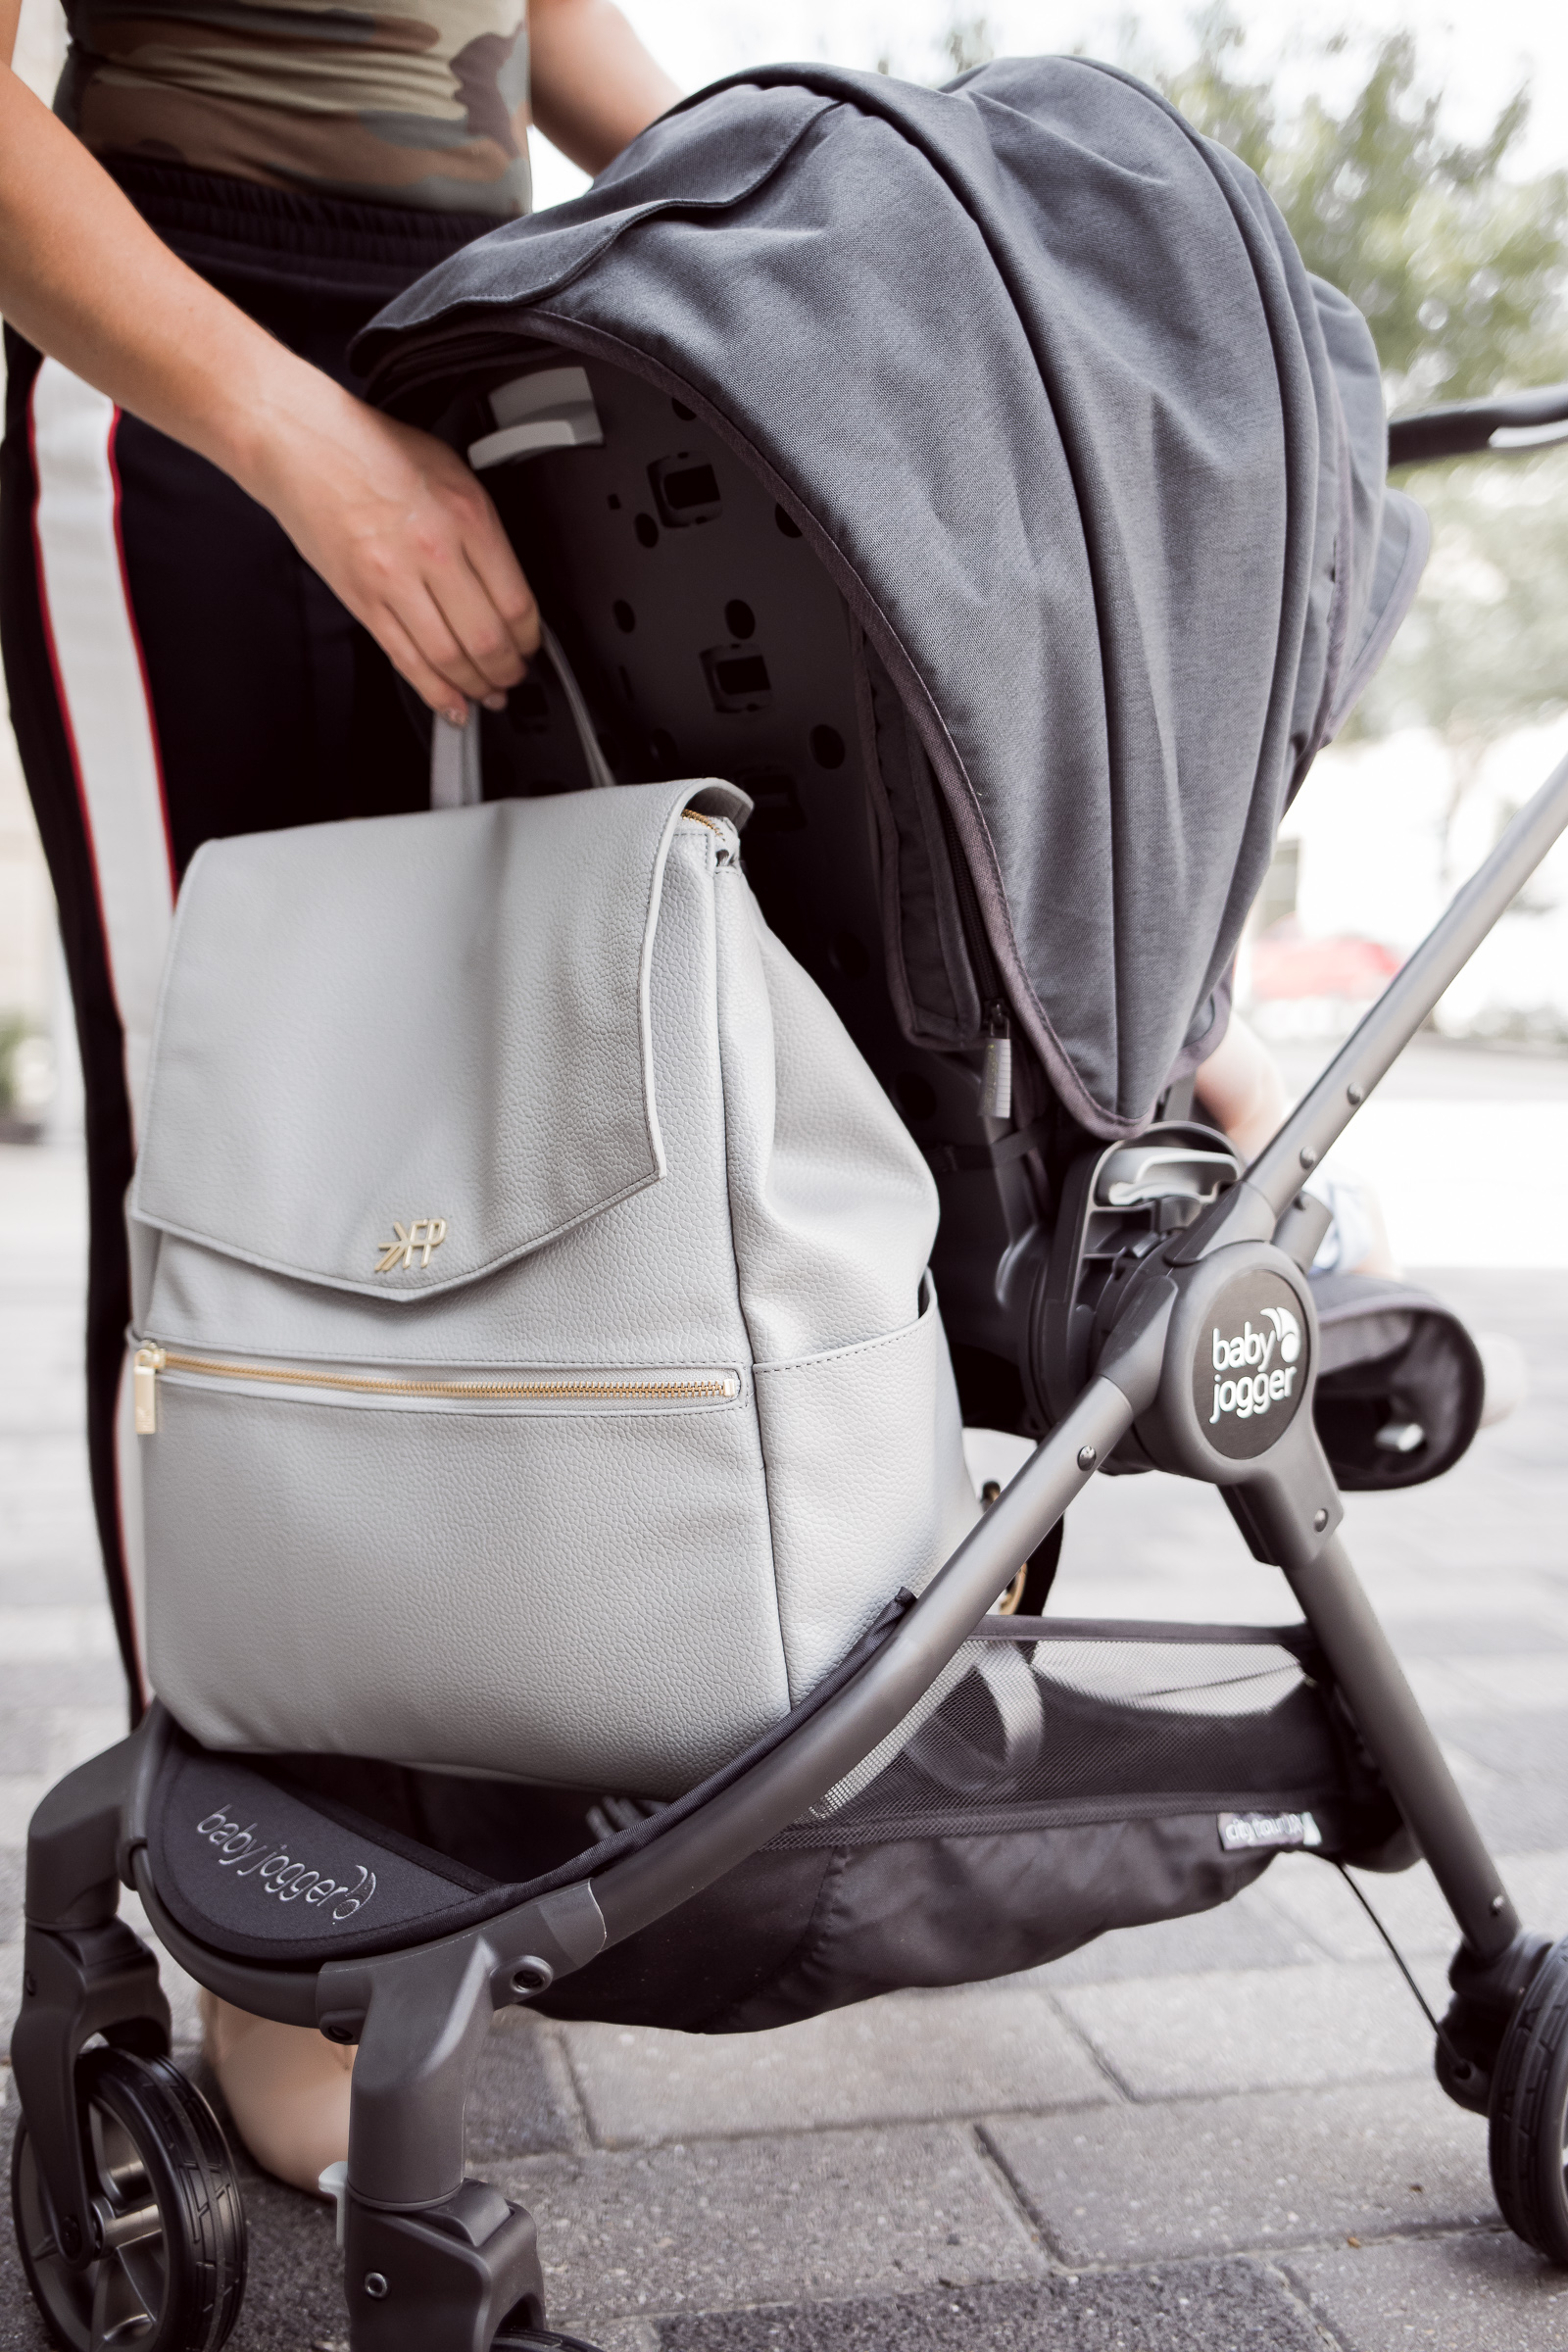 Houston lifestyle blogger Uptown with Elly Brown shares her review on the Baby Jogger City Tour LUX stroller and why it's great for families on the go!